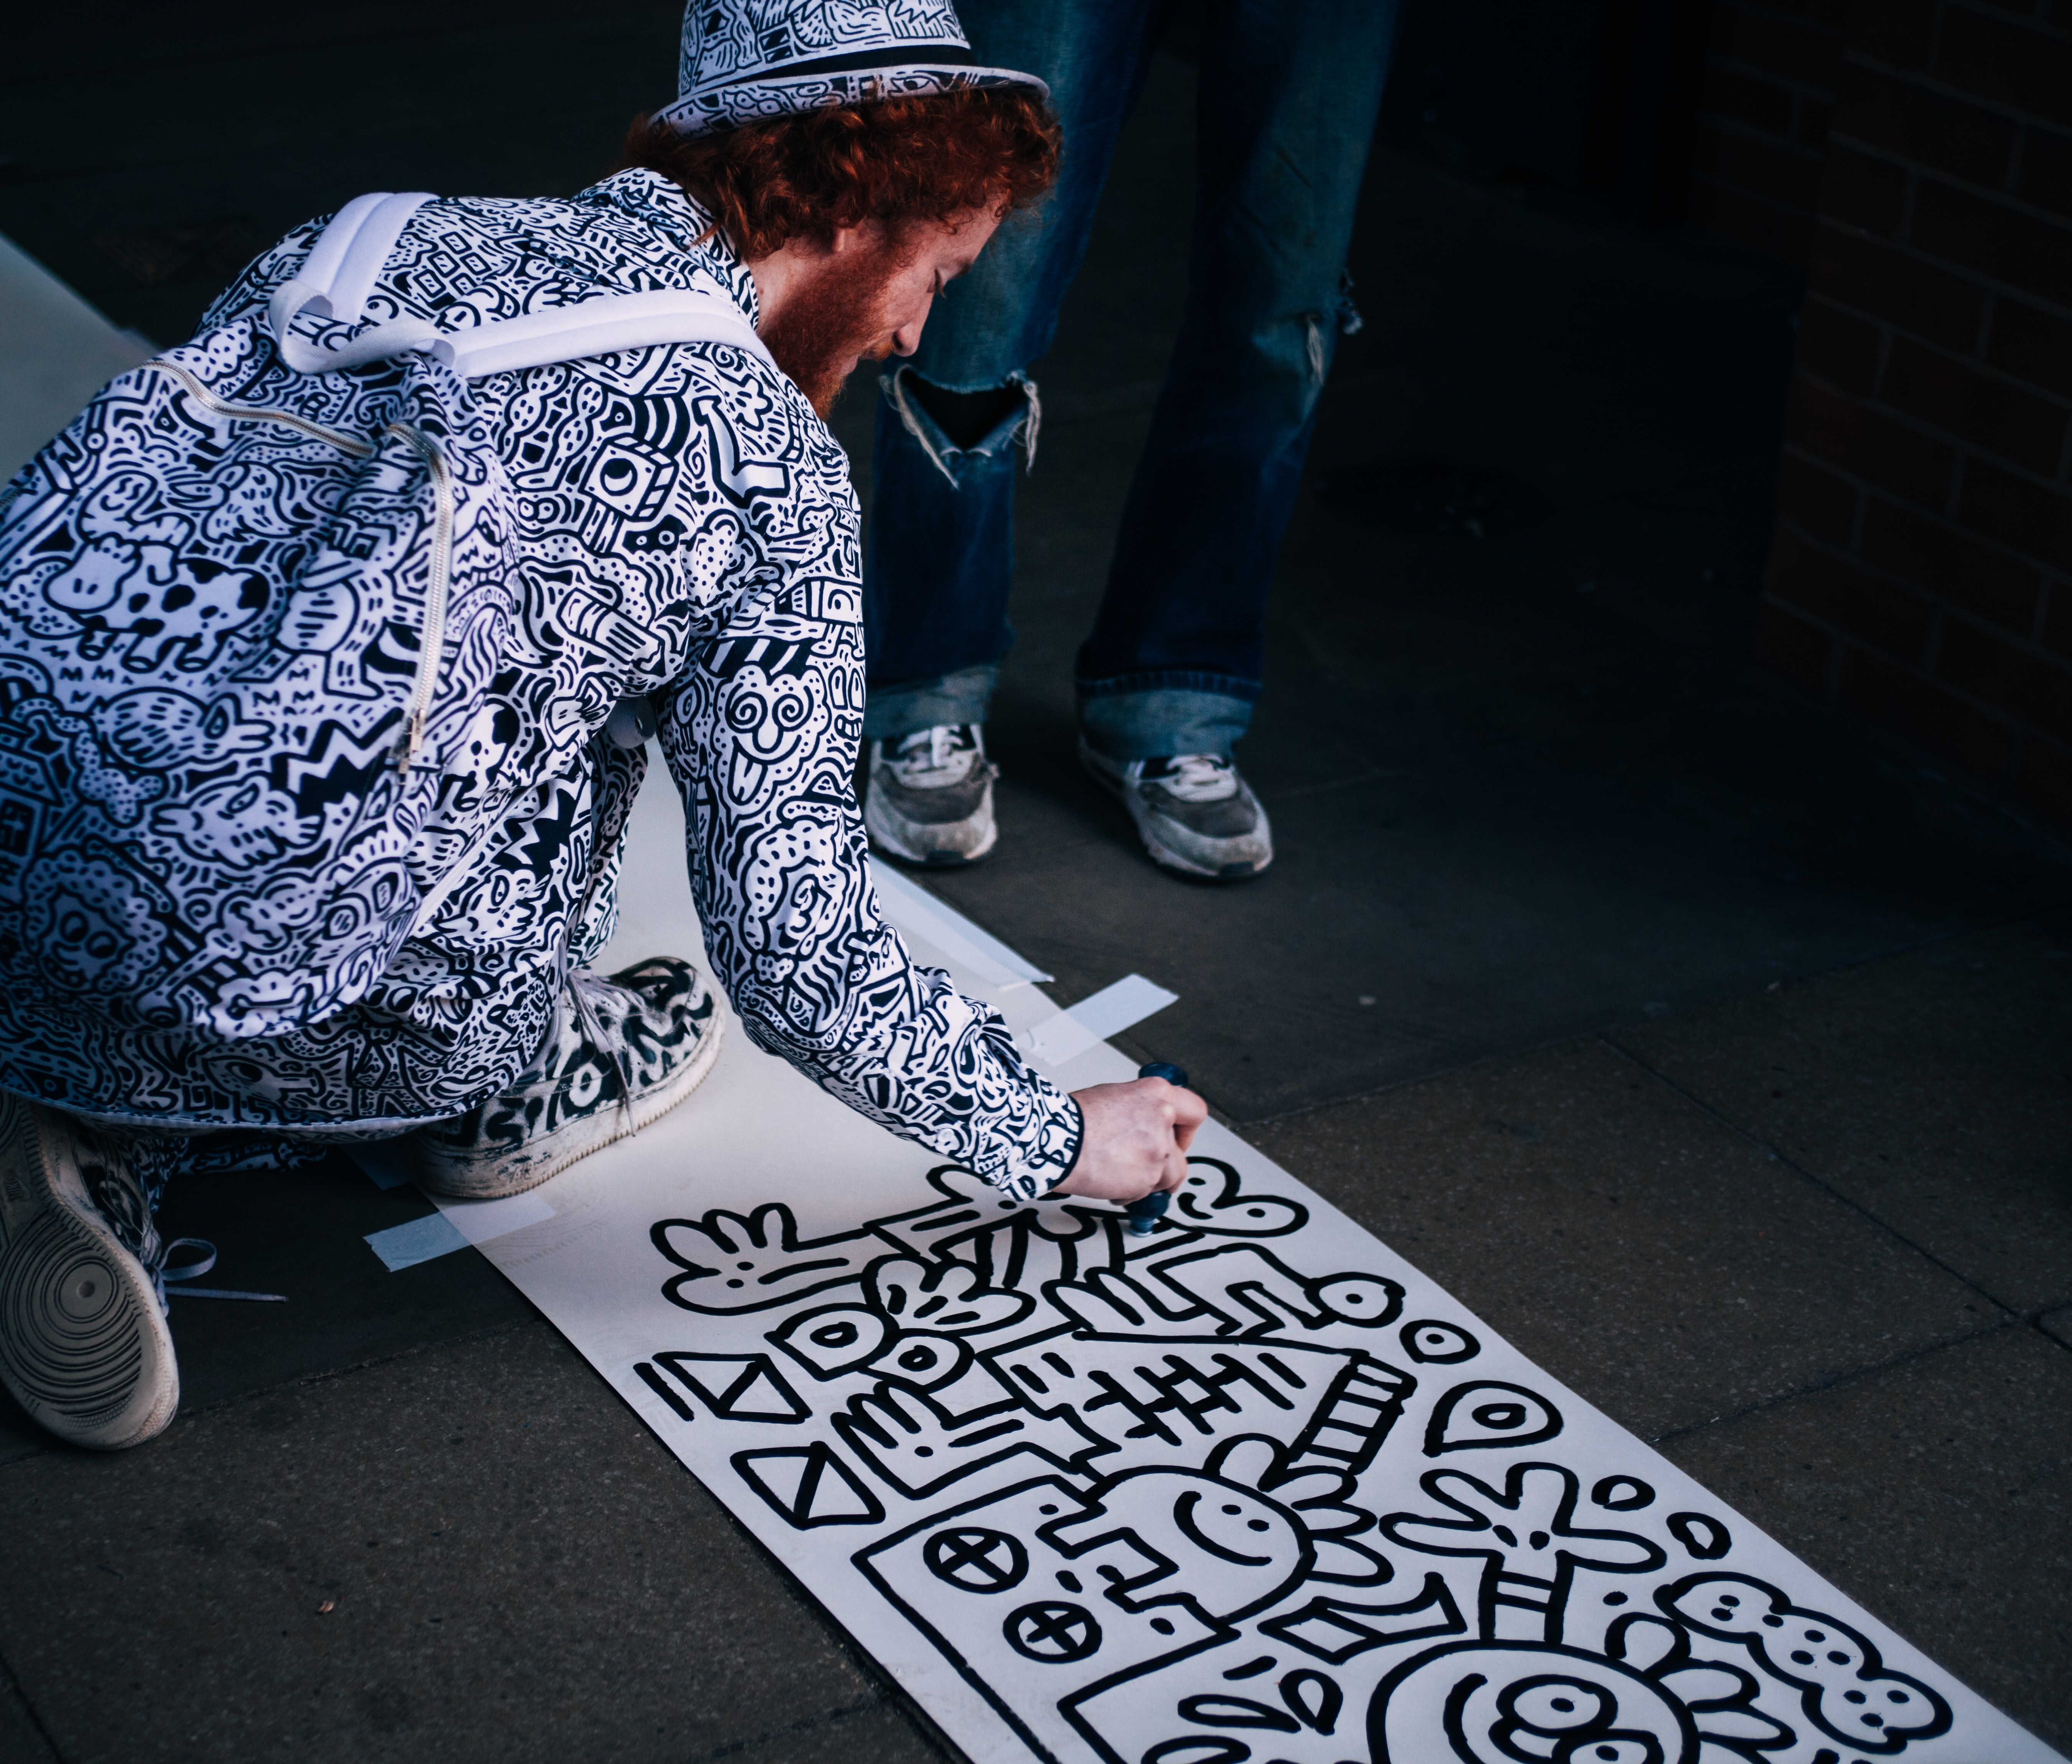 South Bank artist wearing a backpack and hat drawing art while sitting on pavement